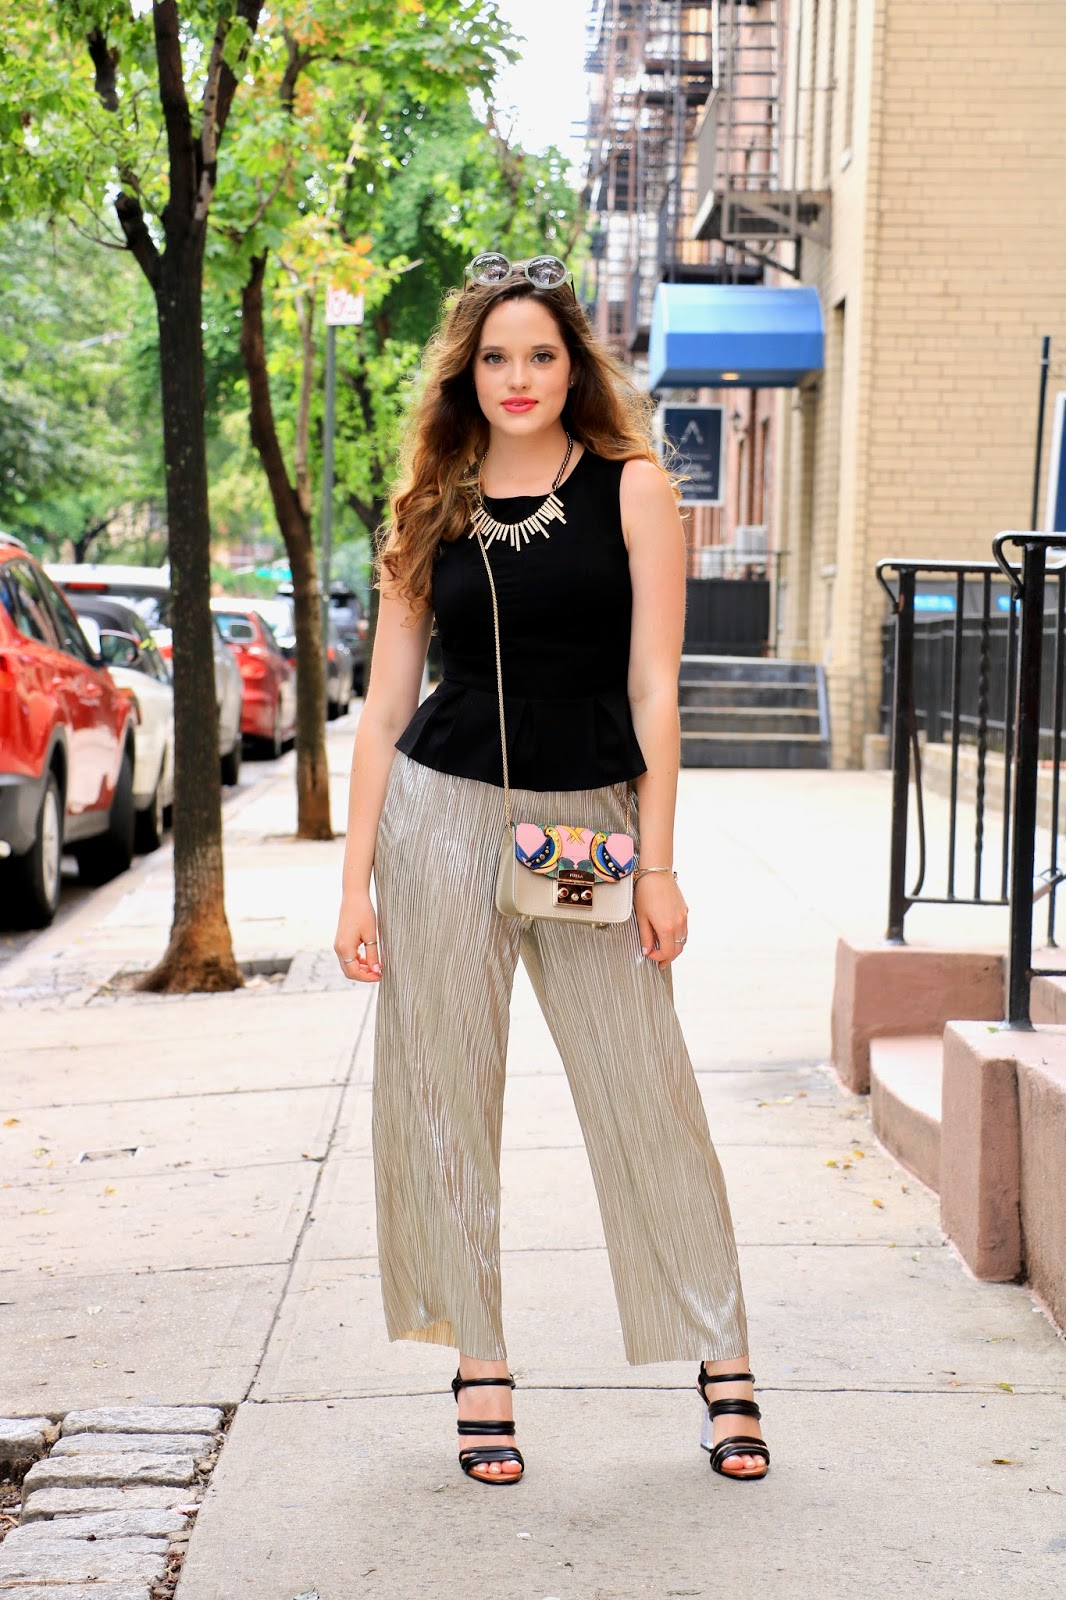 nyc fashion blogger Kathleen Harper on the streets of new york city